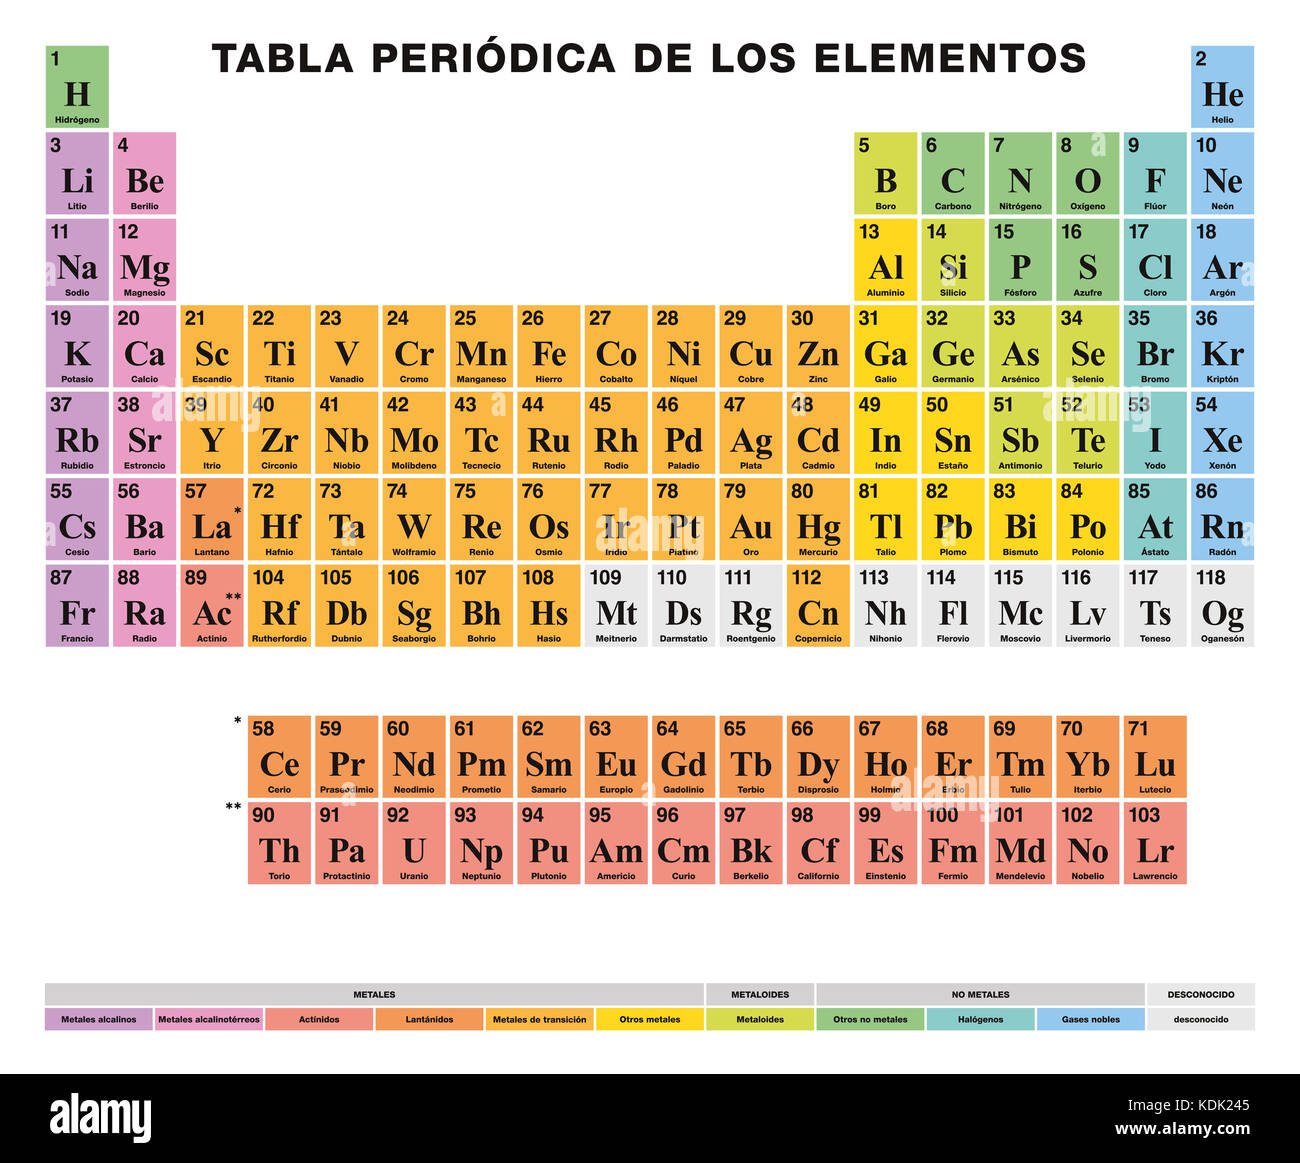 Periodic table of the elements spanish labeling tabular periodic table of the elements spanish labeling tabular arrangement of 118 chemical elements atomic numbers symbols names and color cells urtaz Image collections